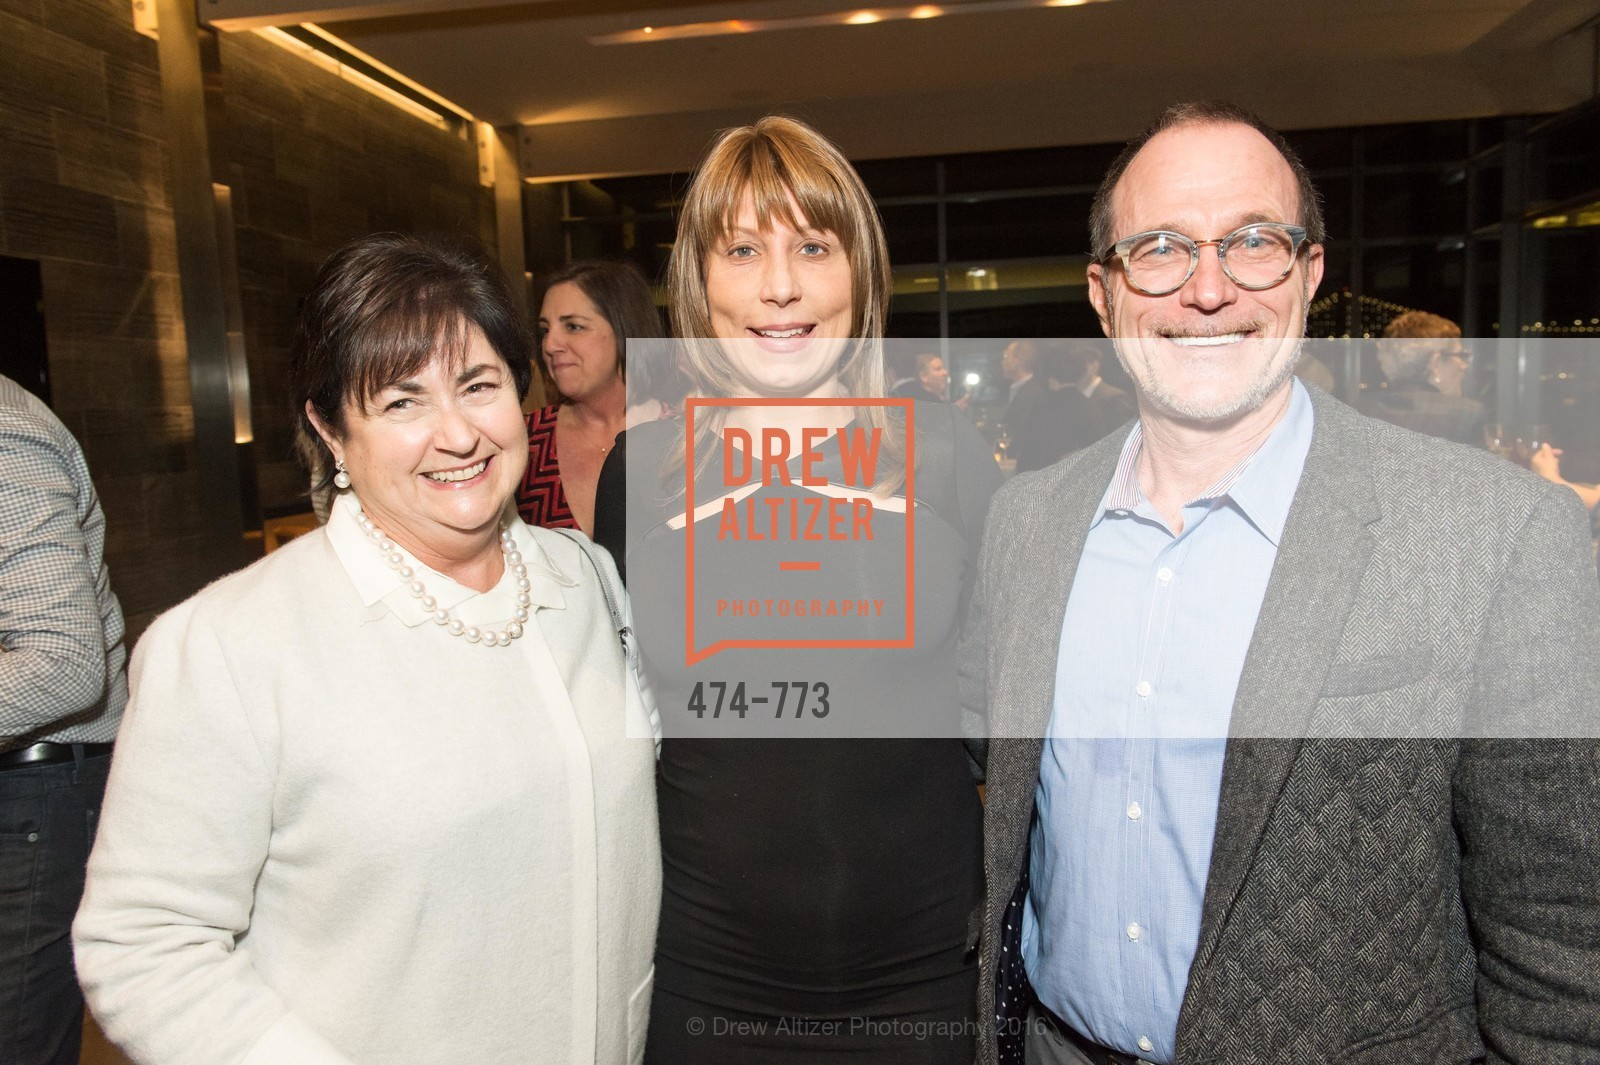 Janet Schindler, Amanda Jones, Brad Smith, Sotheby's International Realty's Celebrates the New Year, The Battery, Penthouse. 717 Battery St, January 27th, 2016,Drew Altizer, Drew Altizer Photography, full-service event agency, private events, San Francisco photographer, photographer California